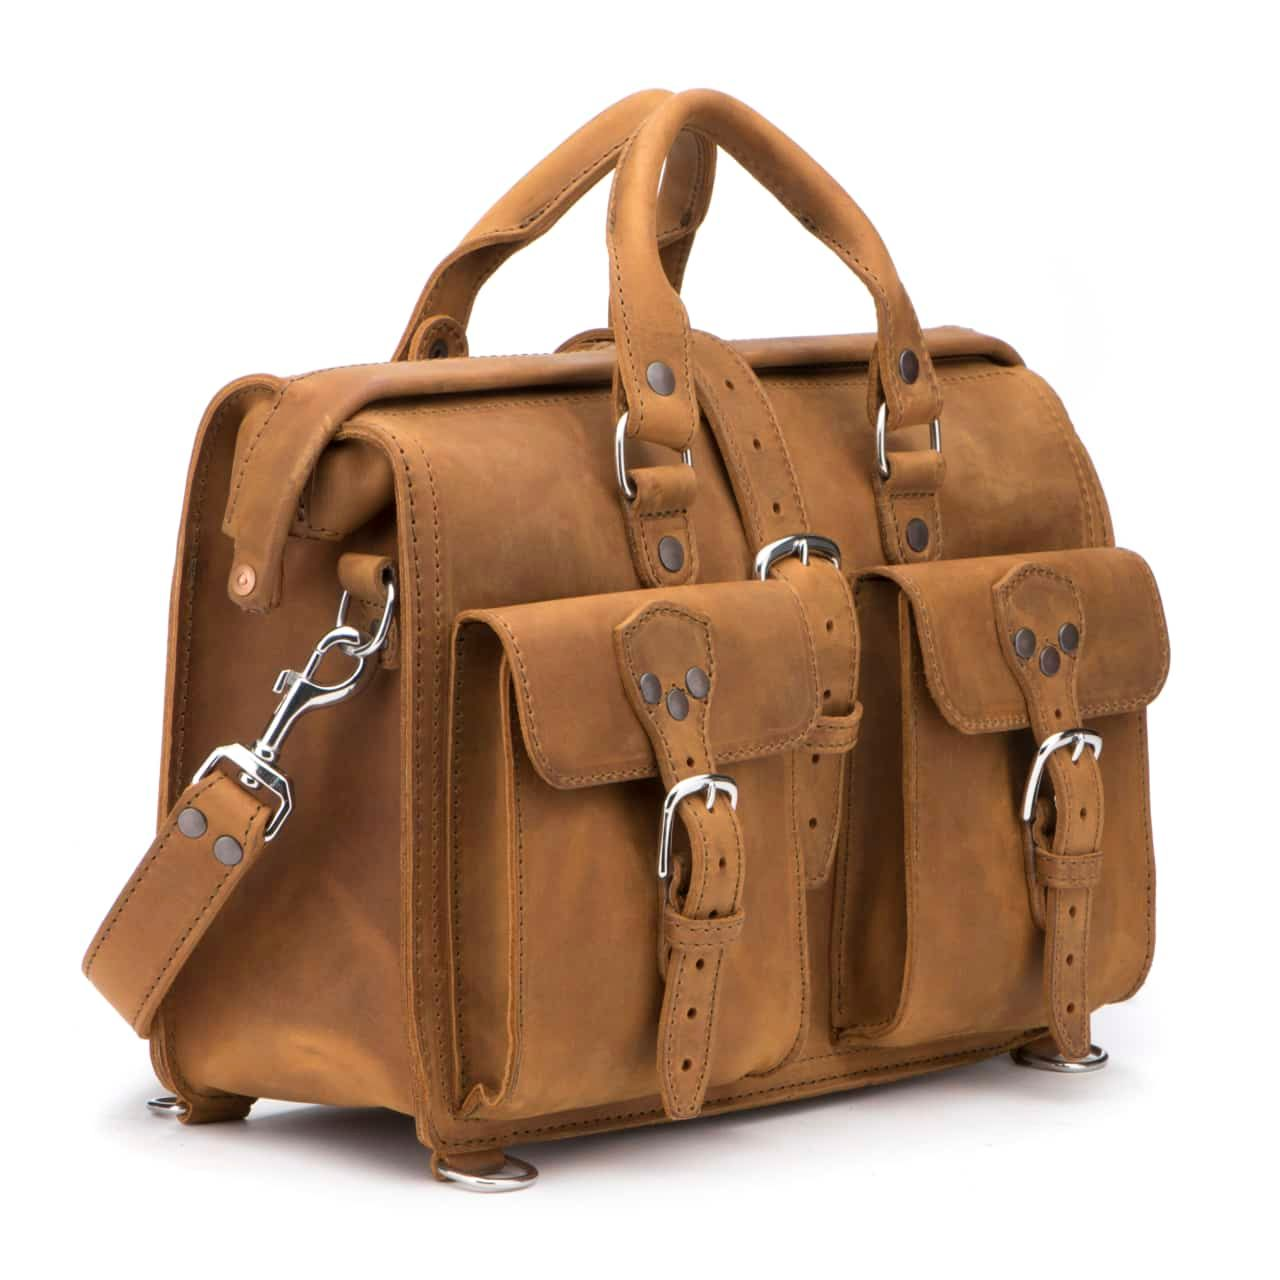 Leather Flight Bag in color Tobacco shown from the Front at an Angle